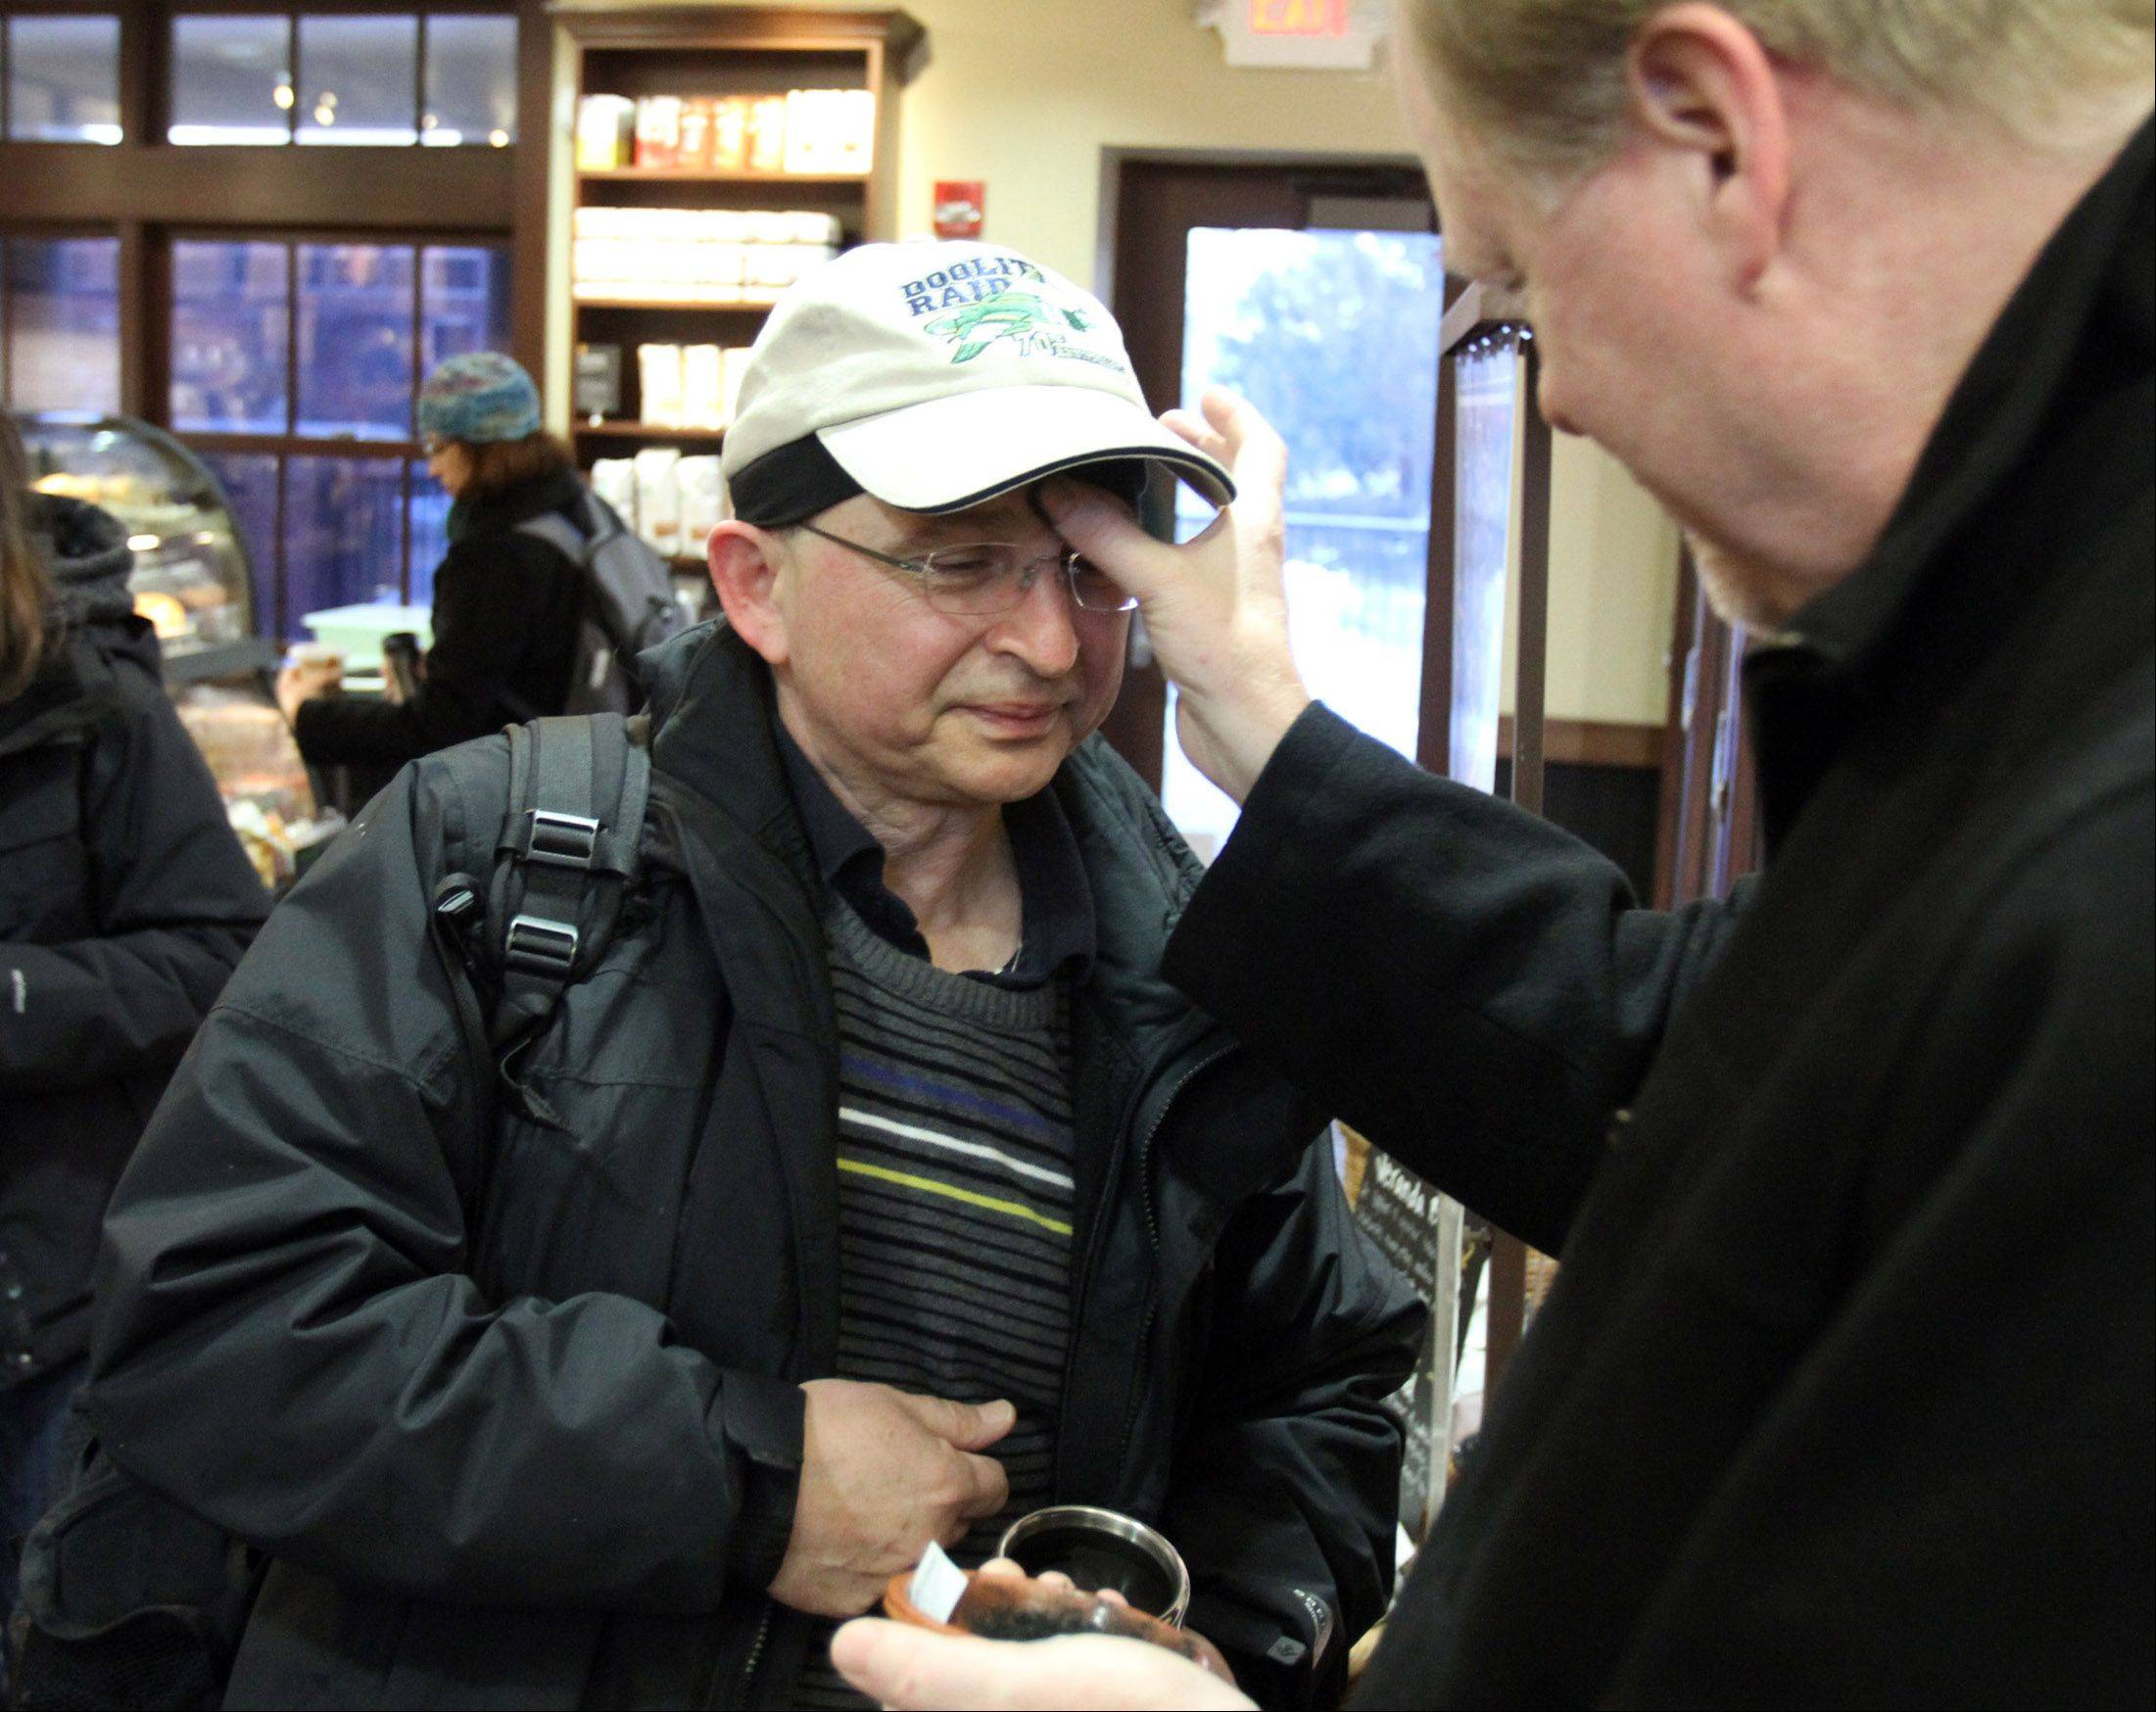 Father Terry Keehan with Holy Family Catholic Community Church in Inverness gives Roman Golash of Palatine ashes for Ash Wednesday inside the Palatine train station.